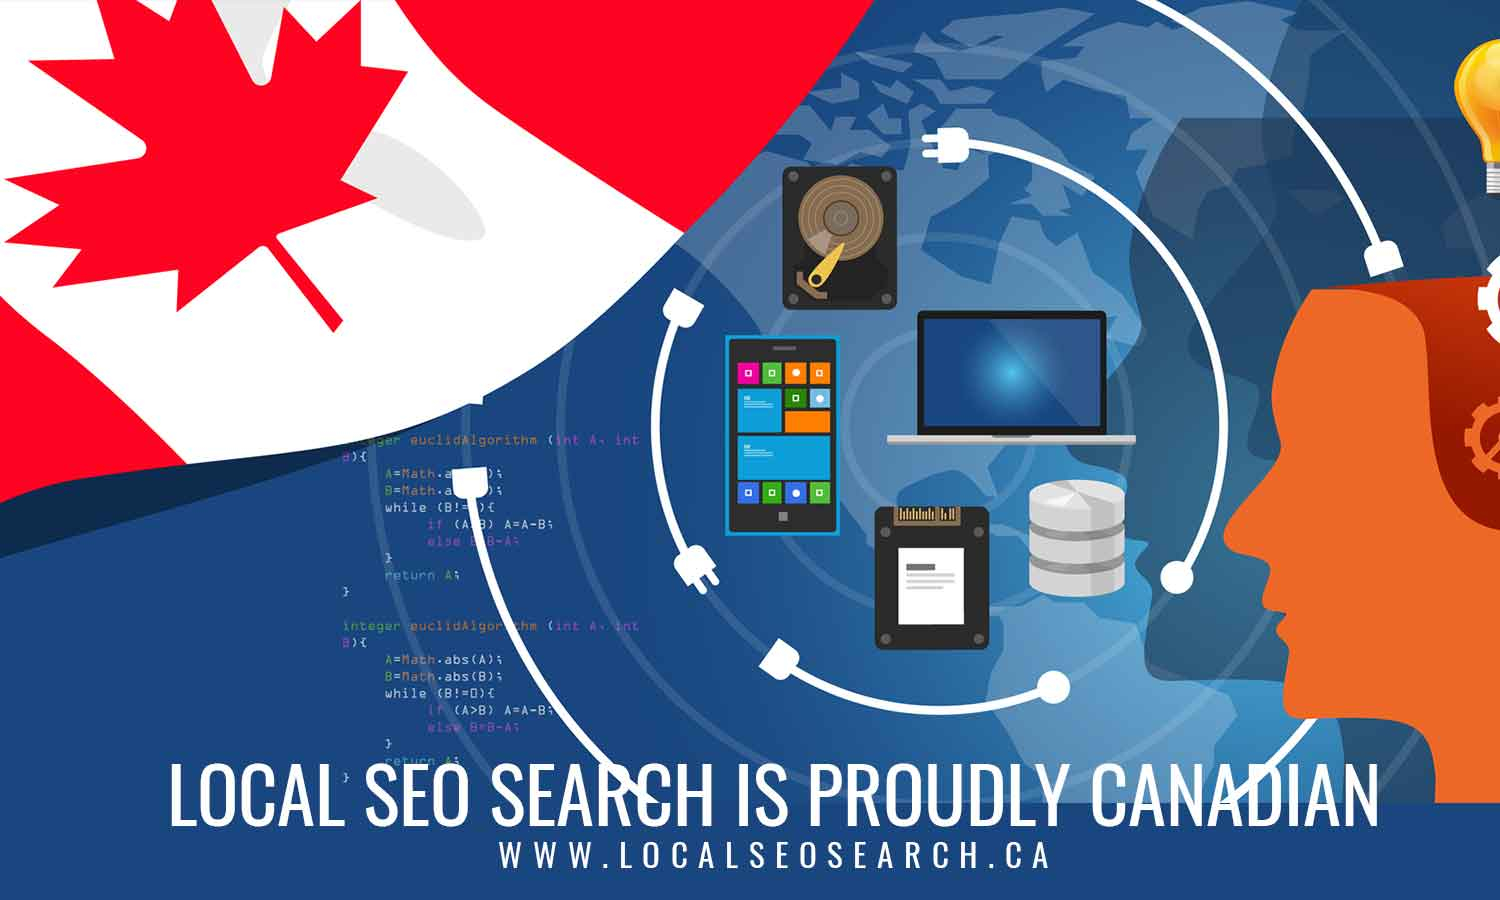 Local SEO Search is proudly Canadian